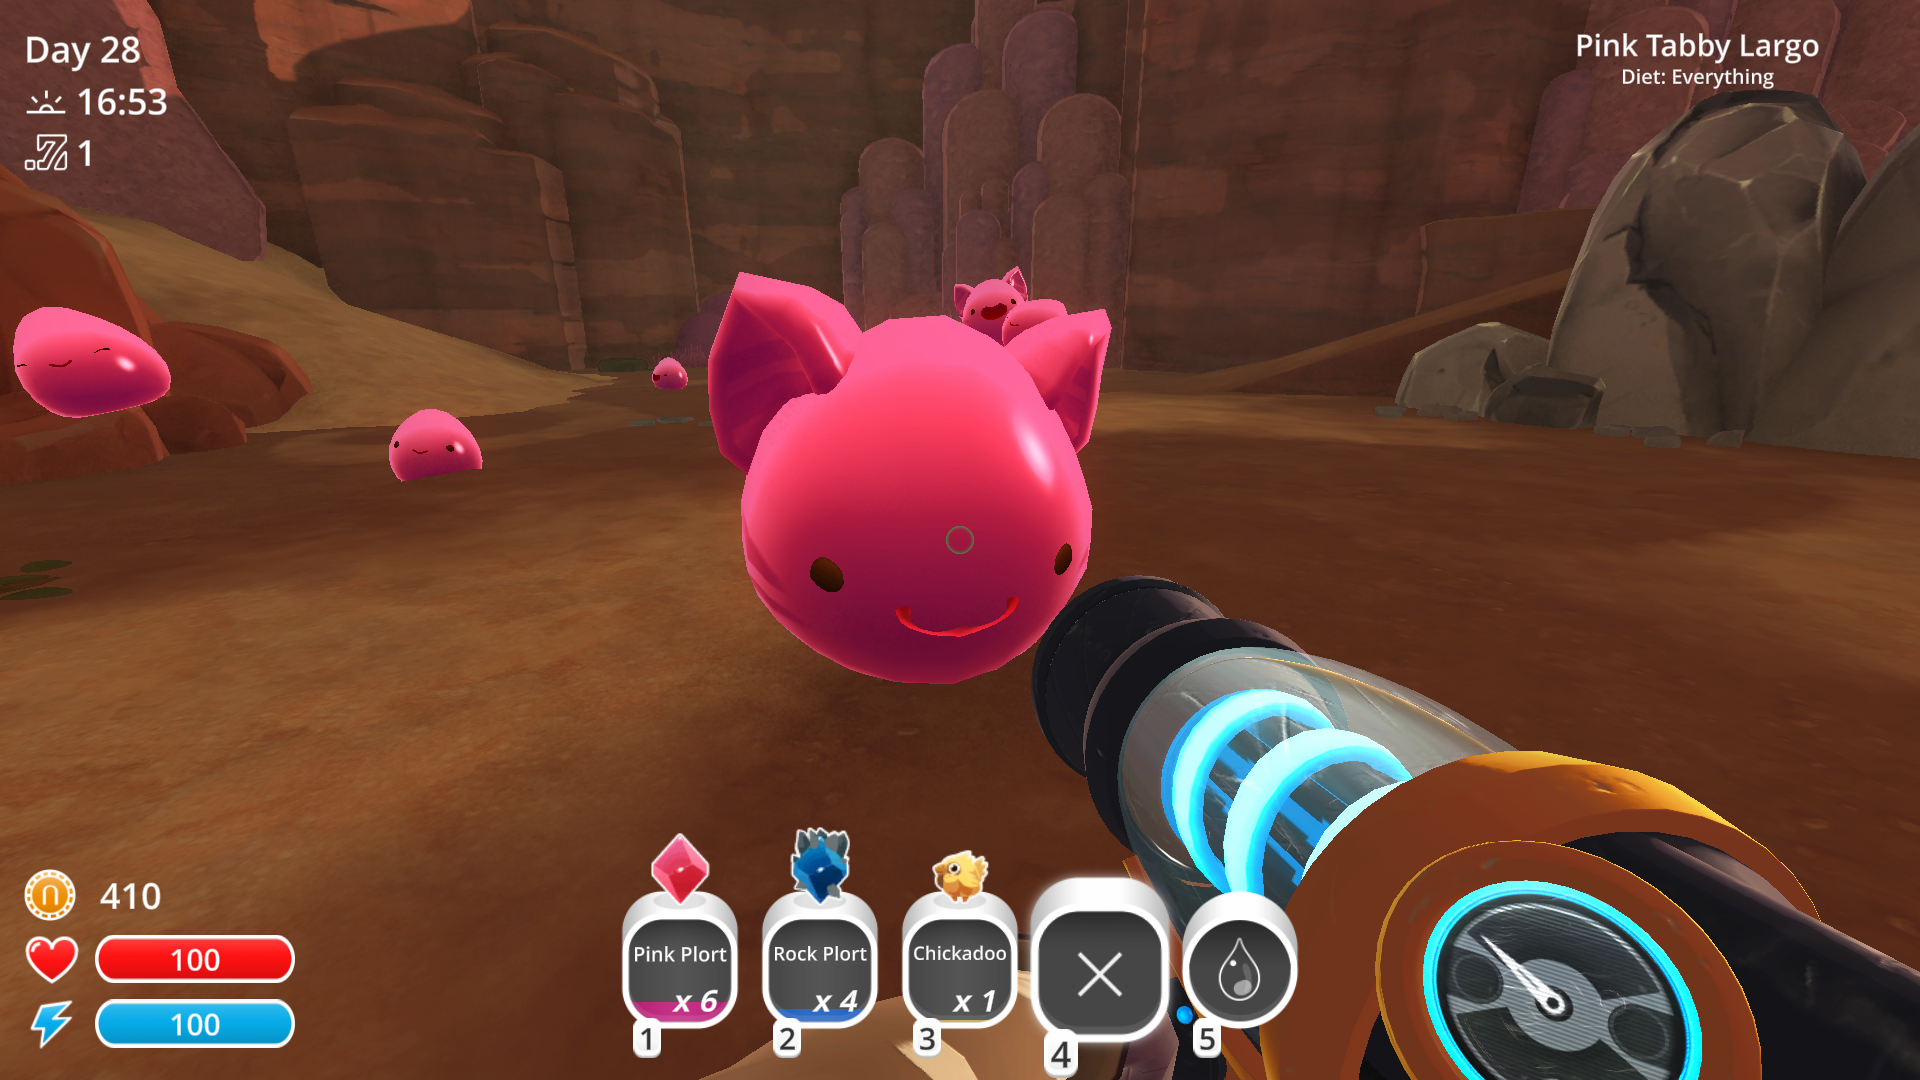 Slime rancher review games asylum the game world is one thats fully alive complete with a day and night cycle wild plants that regenerate over time and hapless feral slimes of varying ccuart Image collections